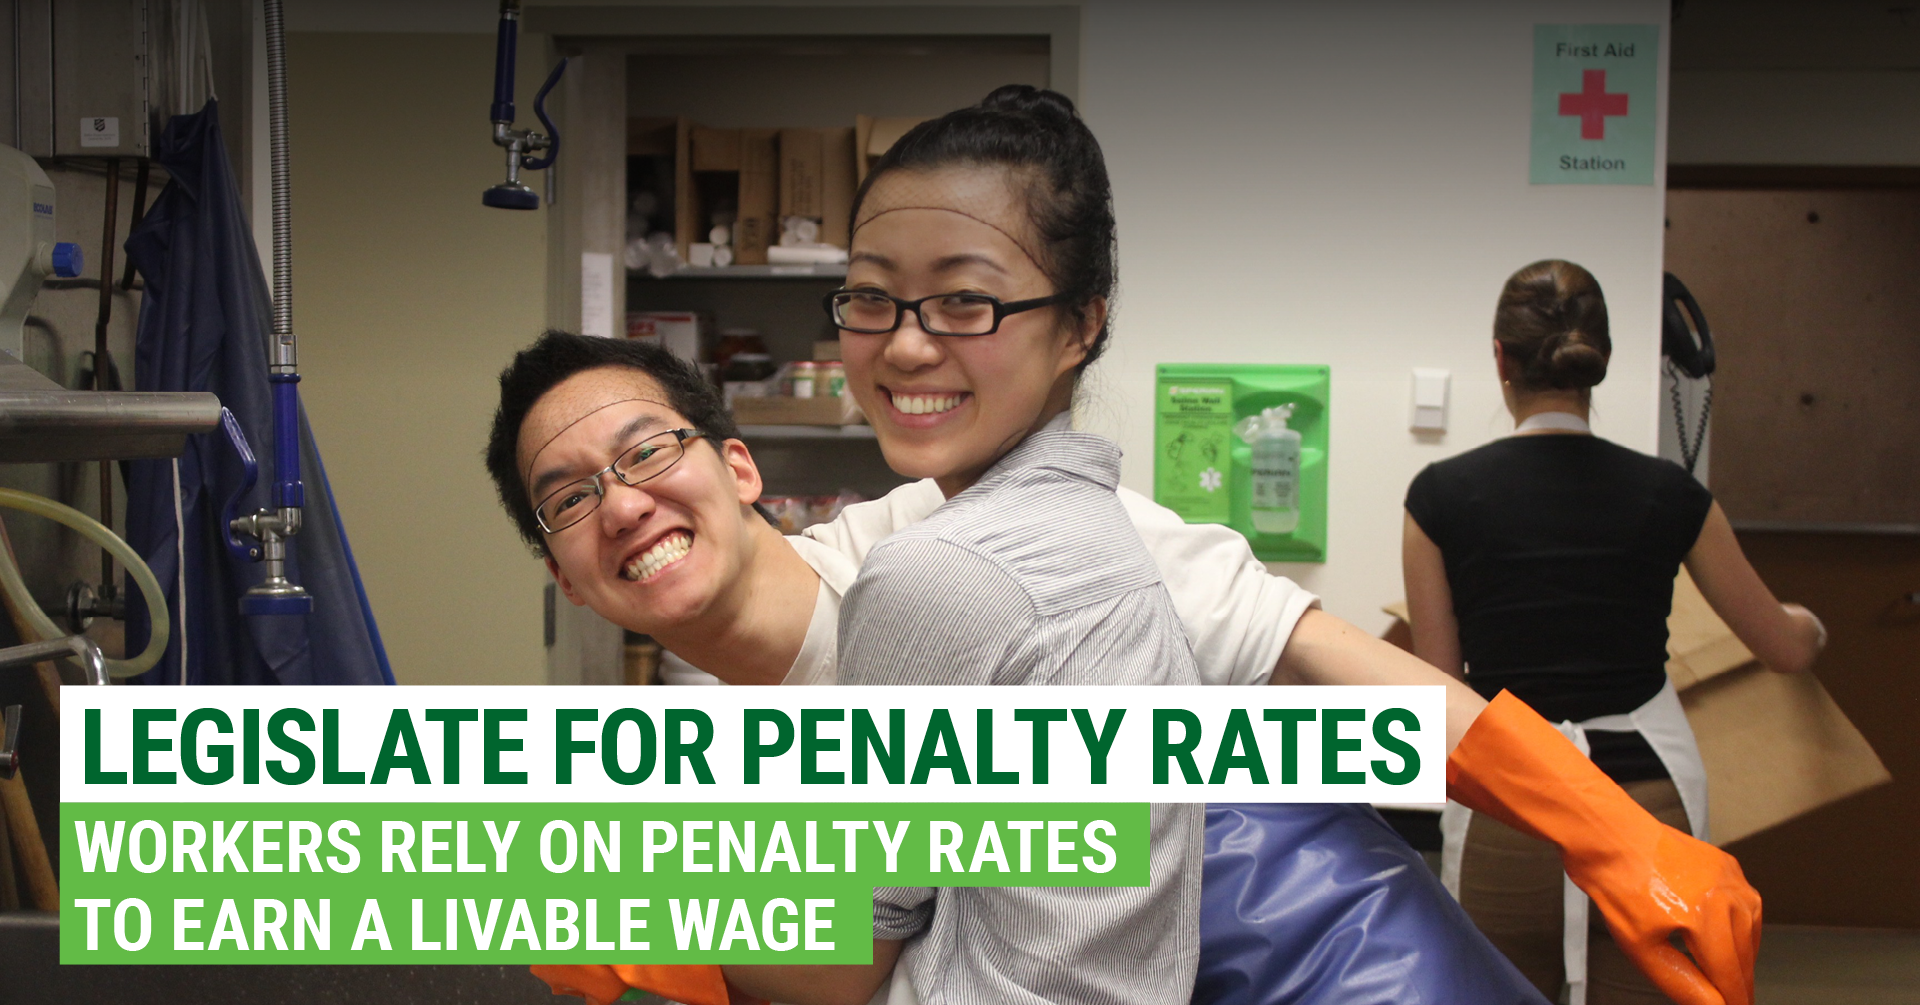 Legislate for Penalty Rates. The Greens work to protect workers' rights.